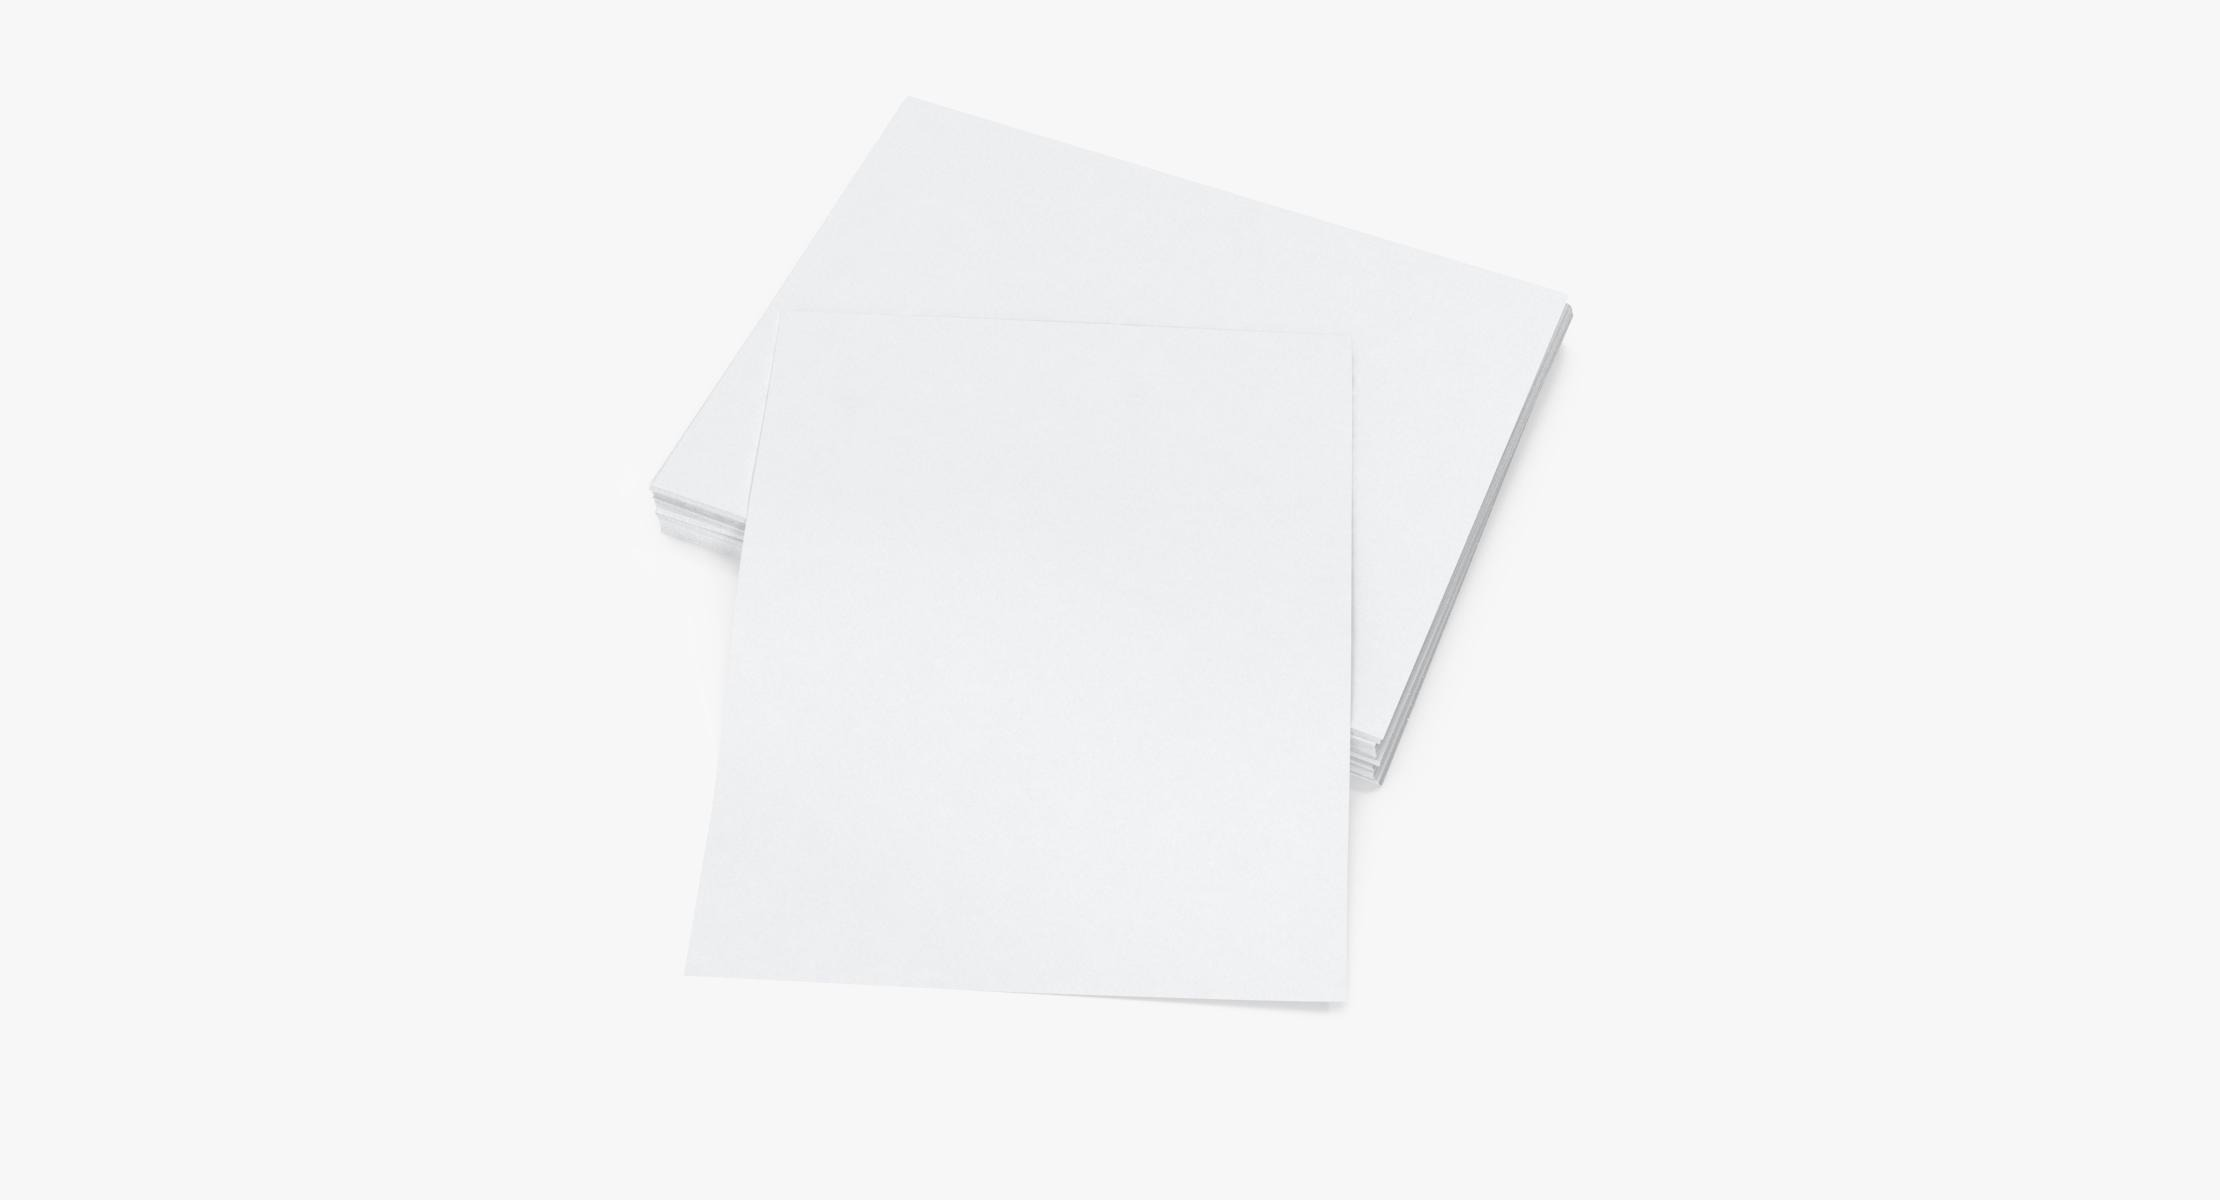 Small Stack of Paper Sheets 03 - reel 1